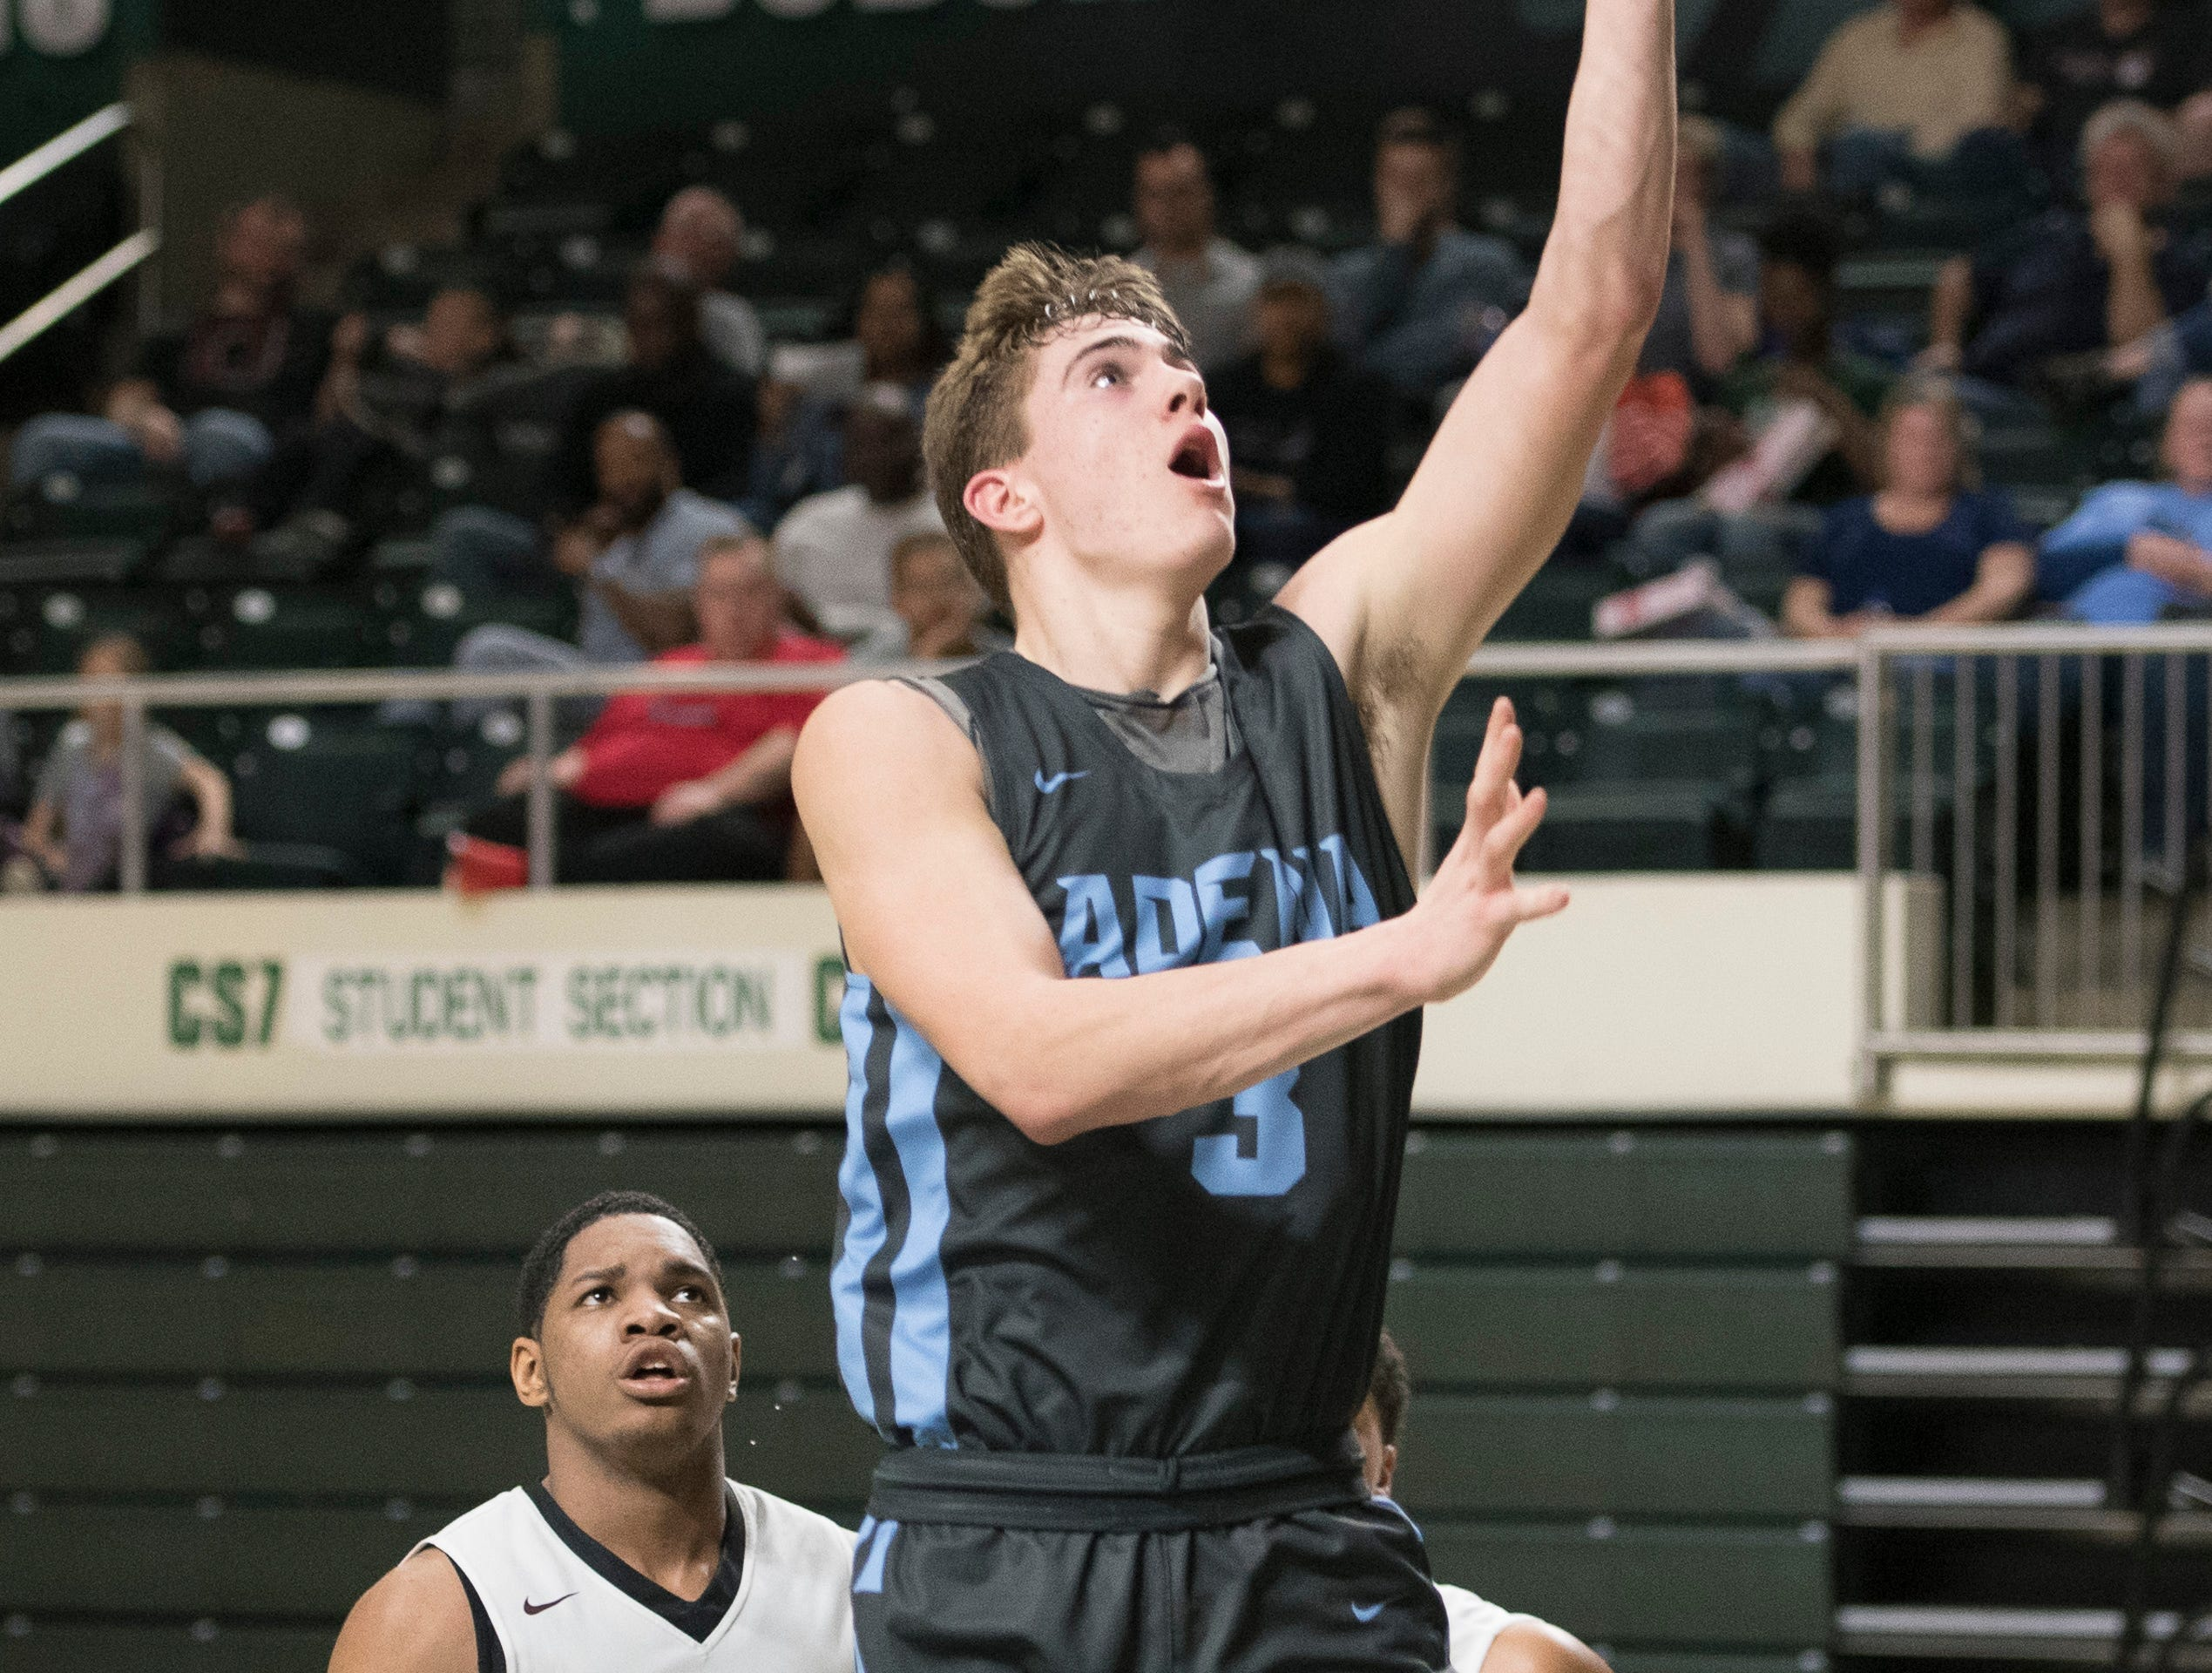 Adena senior Zach Fout takes it to the rim to score against Harvest Prep Thursday night in a Division III regional semifinal game at Ohio University's Convocation Center on March 14, 2019. Adena lost to Harvest Prep 79-38.